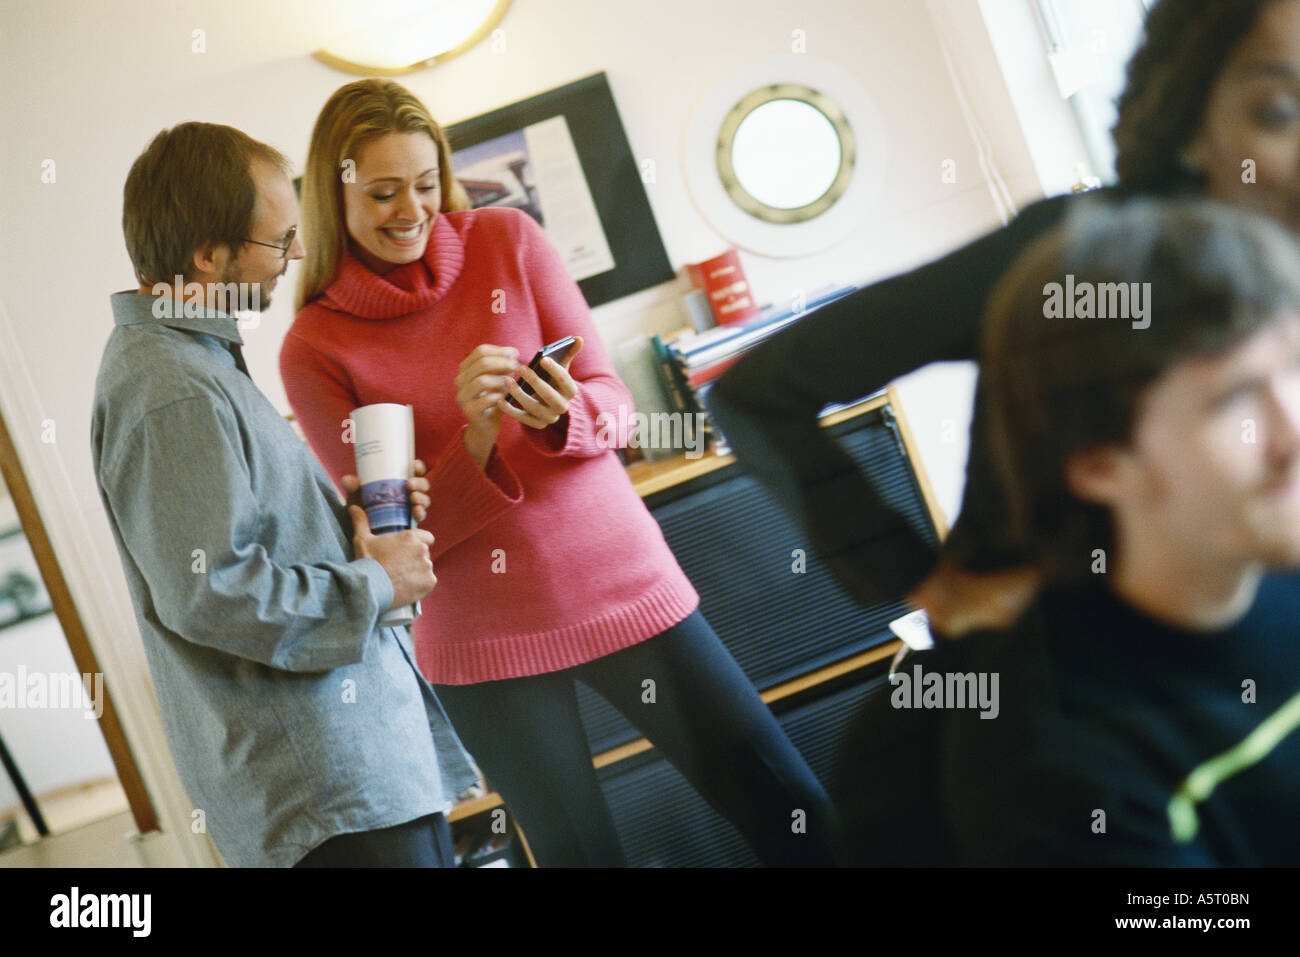 Man and woman using electronic organizer, second man and woman in foreground - Stock Image